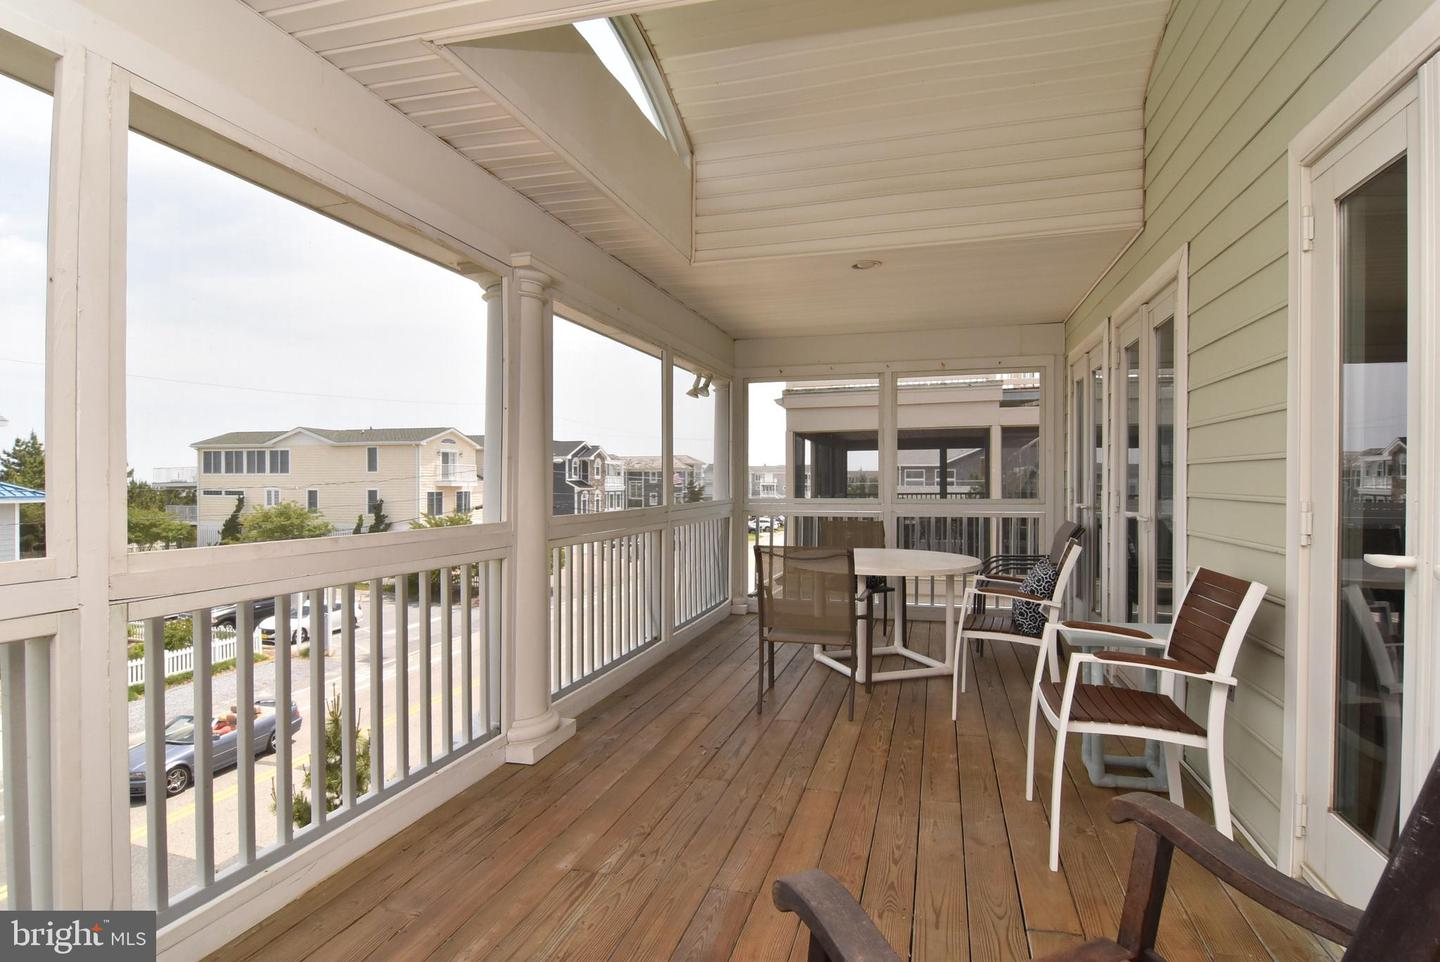 DESU141210-301754684224-2019-05-30-08-28-54 87 N Atlantic Ave | Bethany Beach, De Real Estate For Sale | MLS# Desu141210  - Suzanne Macnab